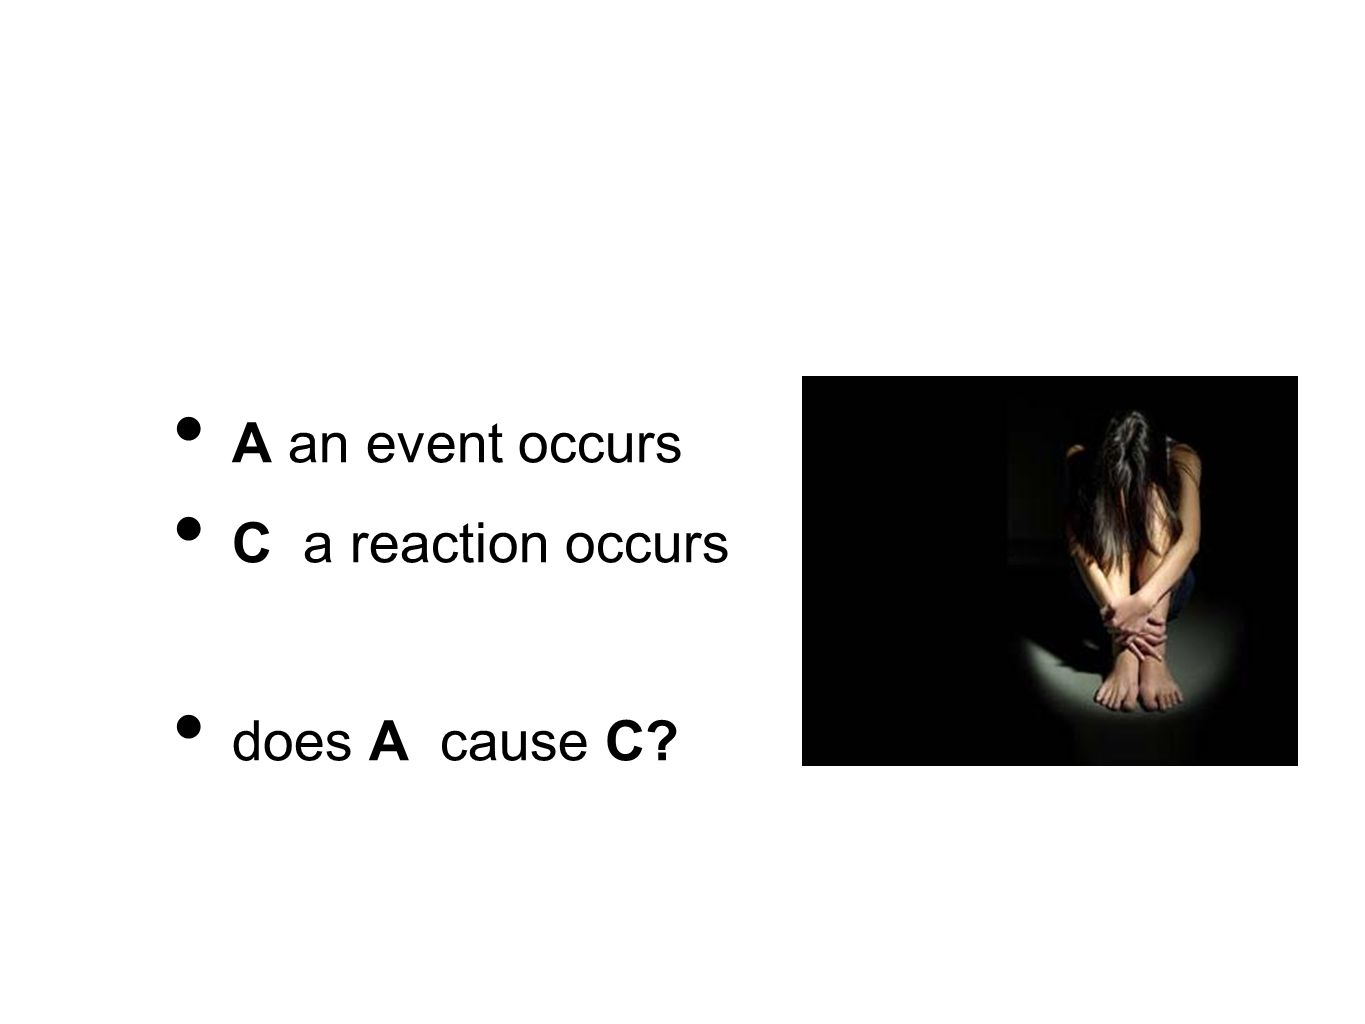 A an event occurs C a reaction occurs does A cause C